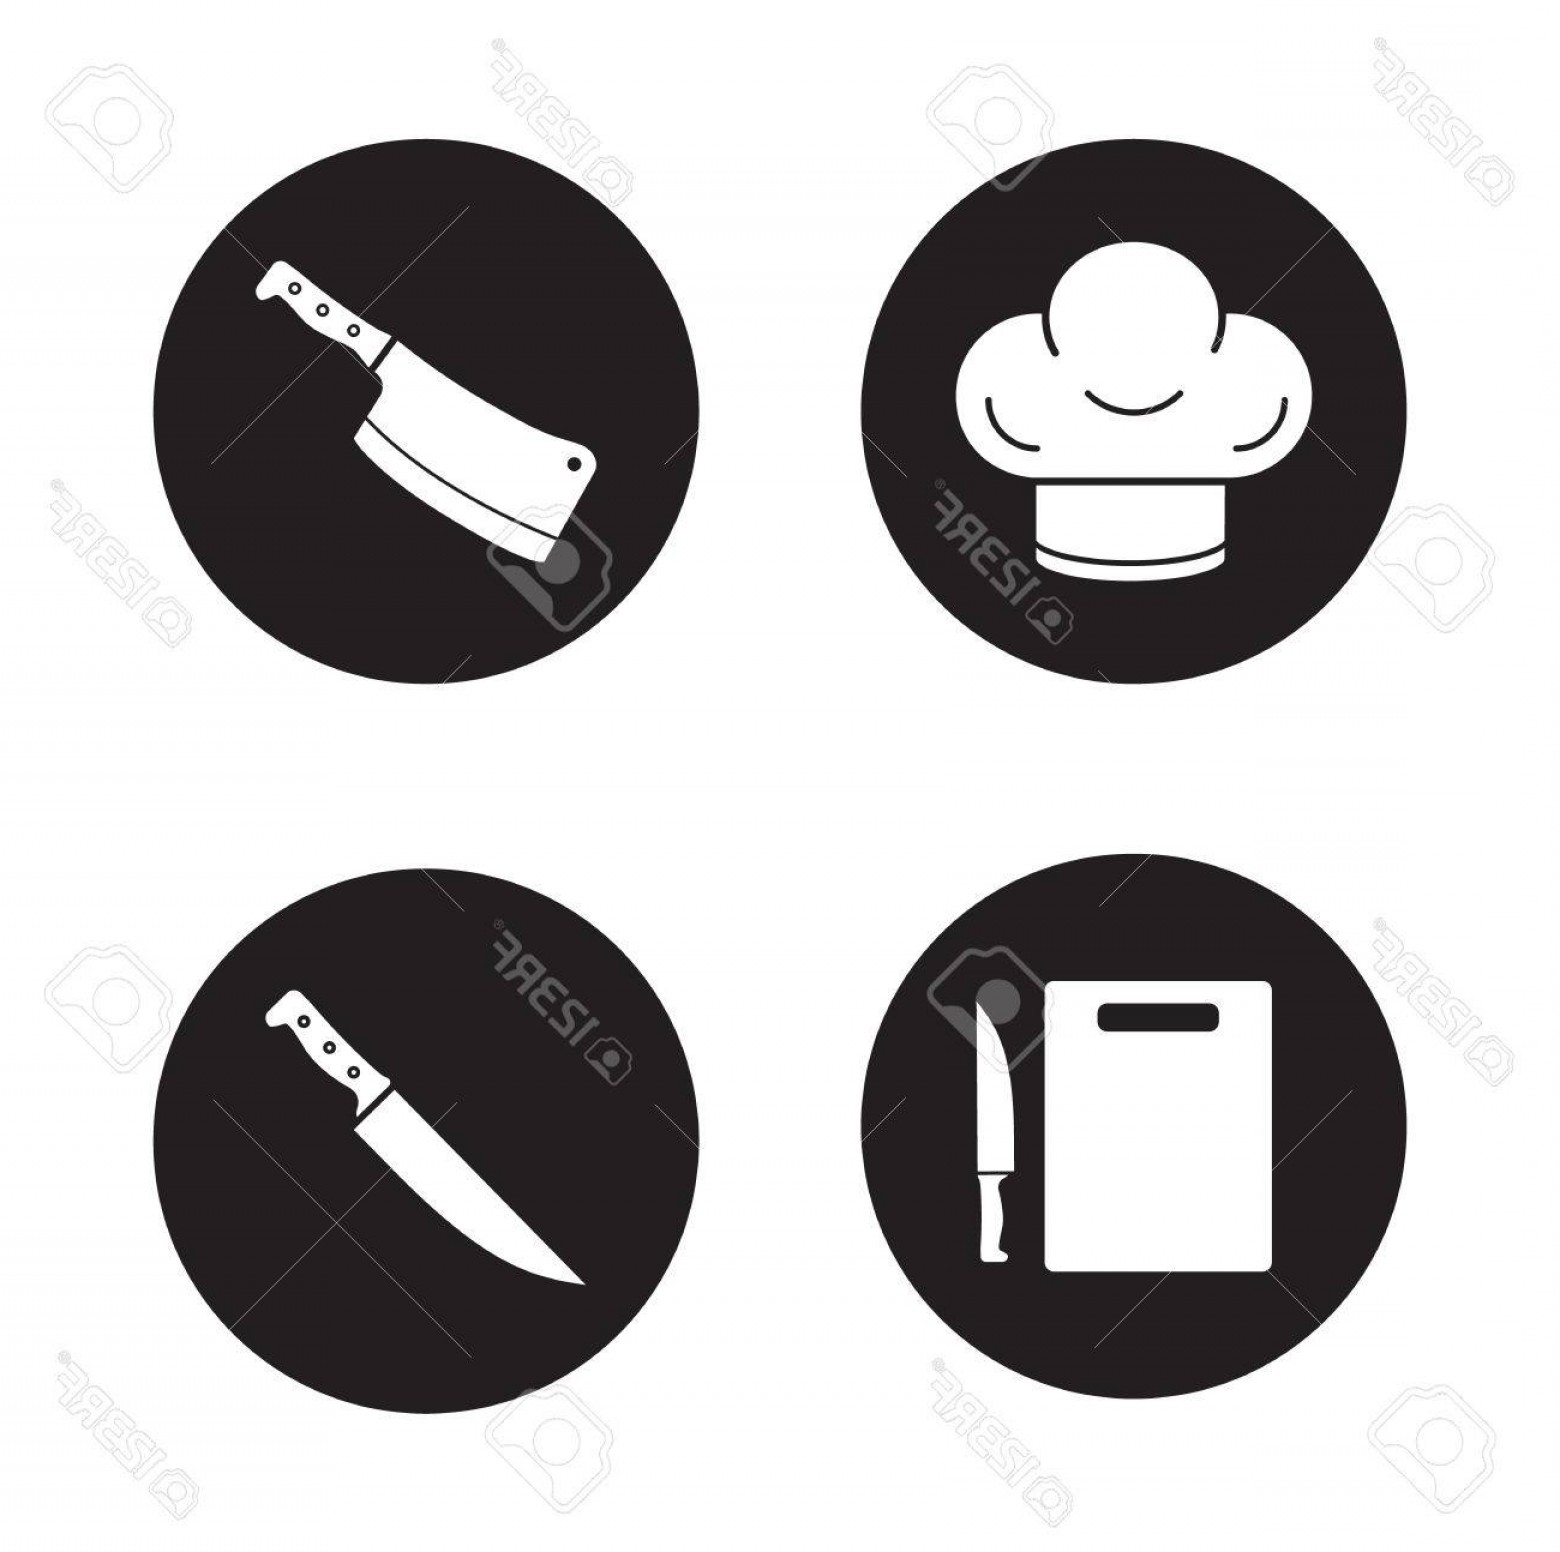 1560x1552 Photostock Vector Chef Cooking Tools Black Icons Set Chef S Hat